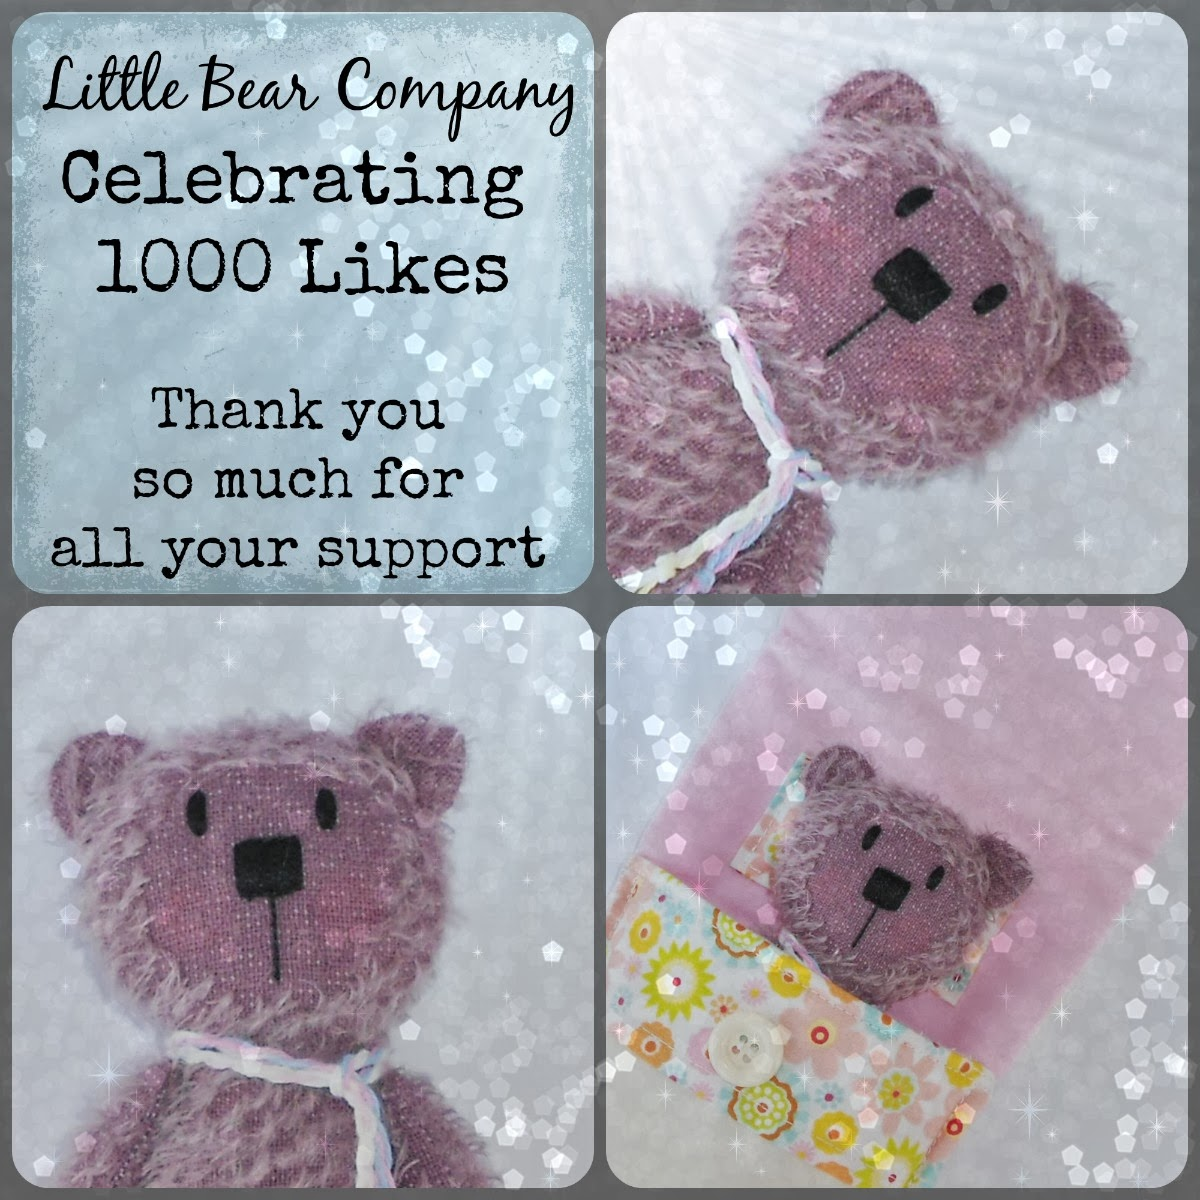 www.facebook.com/littlebearcompany